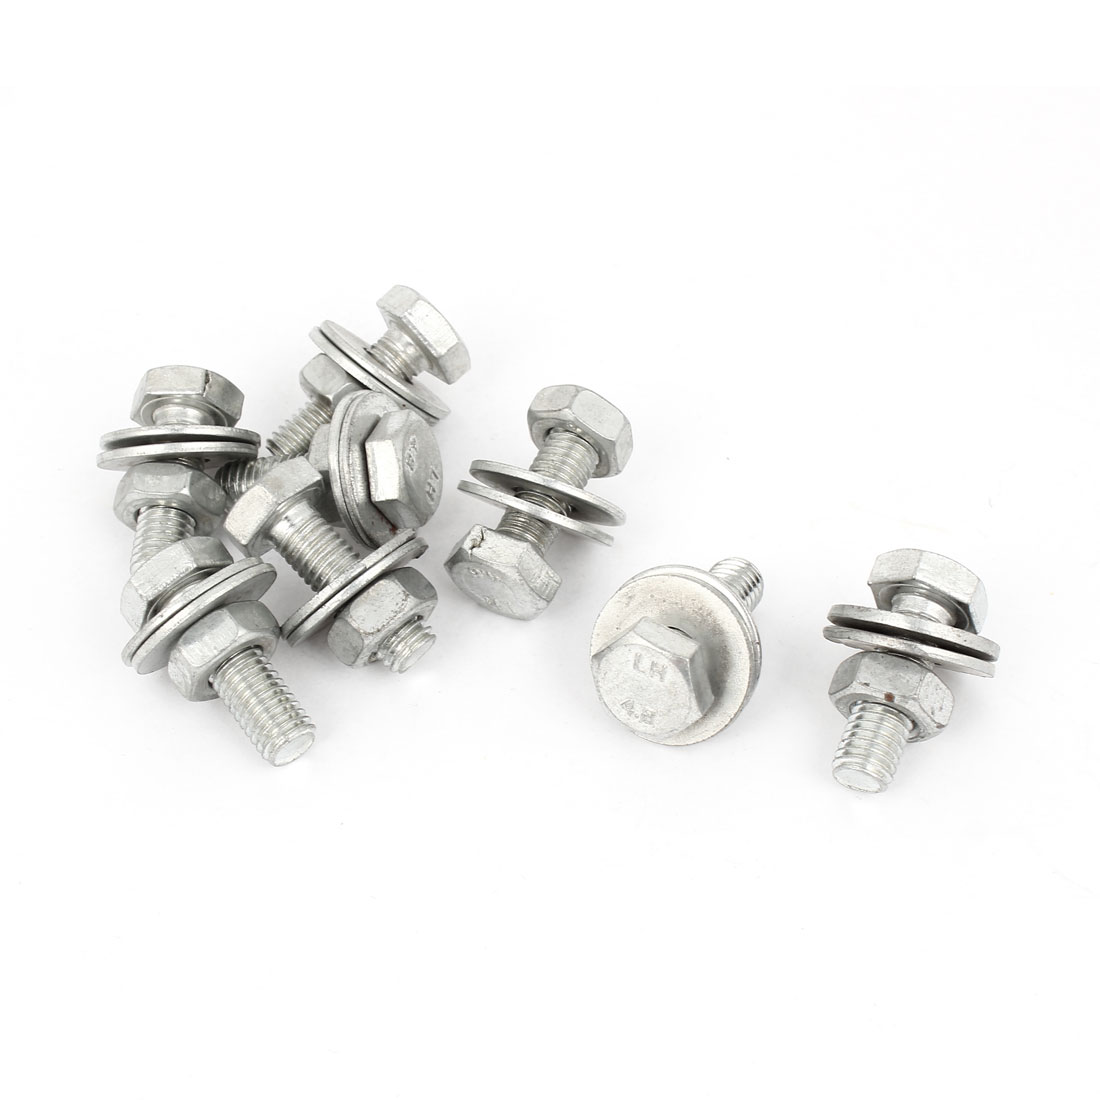 8 Pcs M8 x 26mm Stainless Steel Expansion Screws 30mm Long for Air conditioning